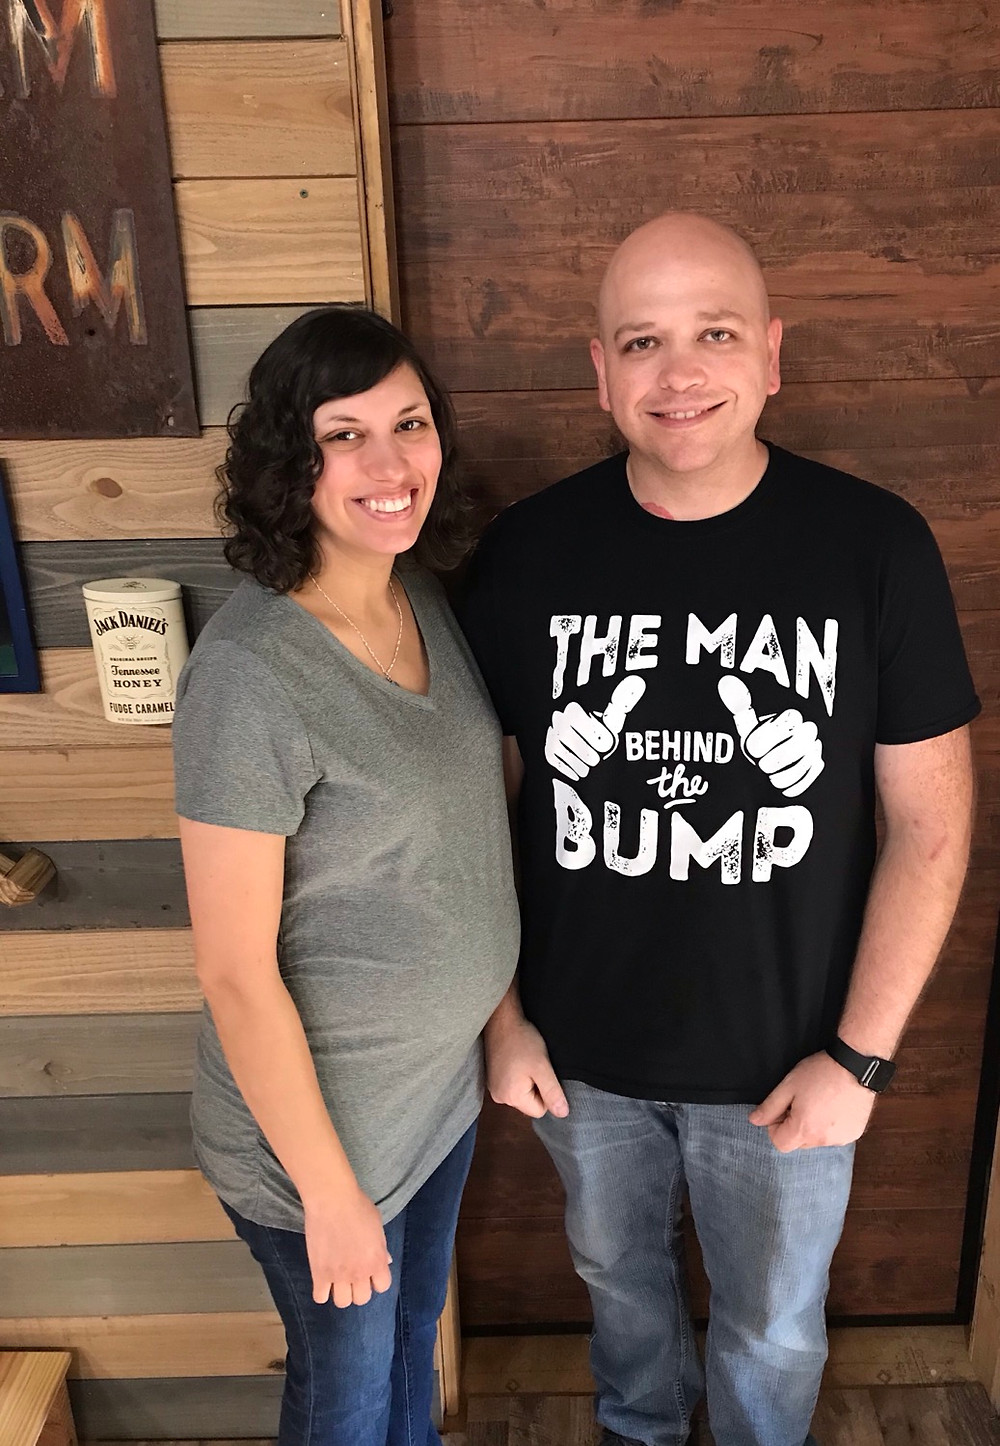 Father to be trains to support his wife in natural birth